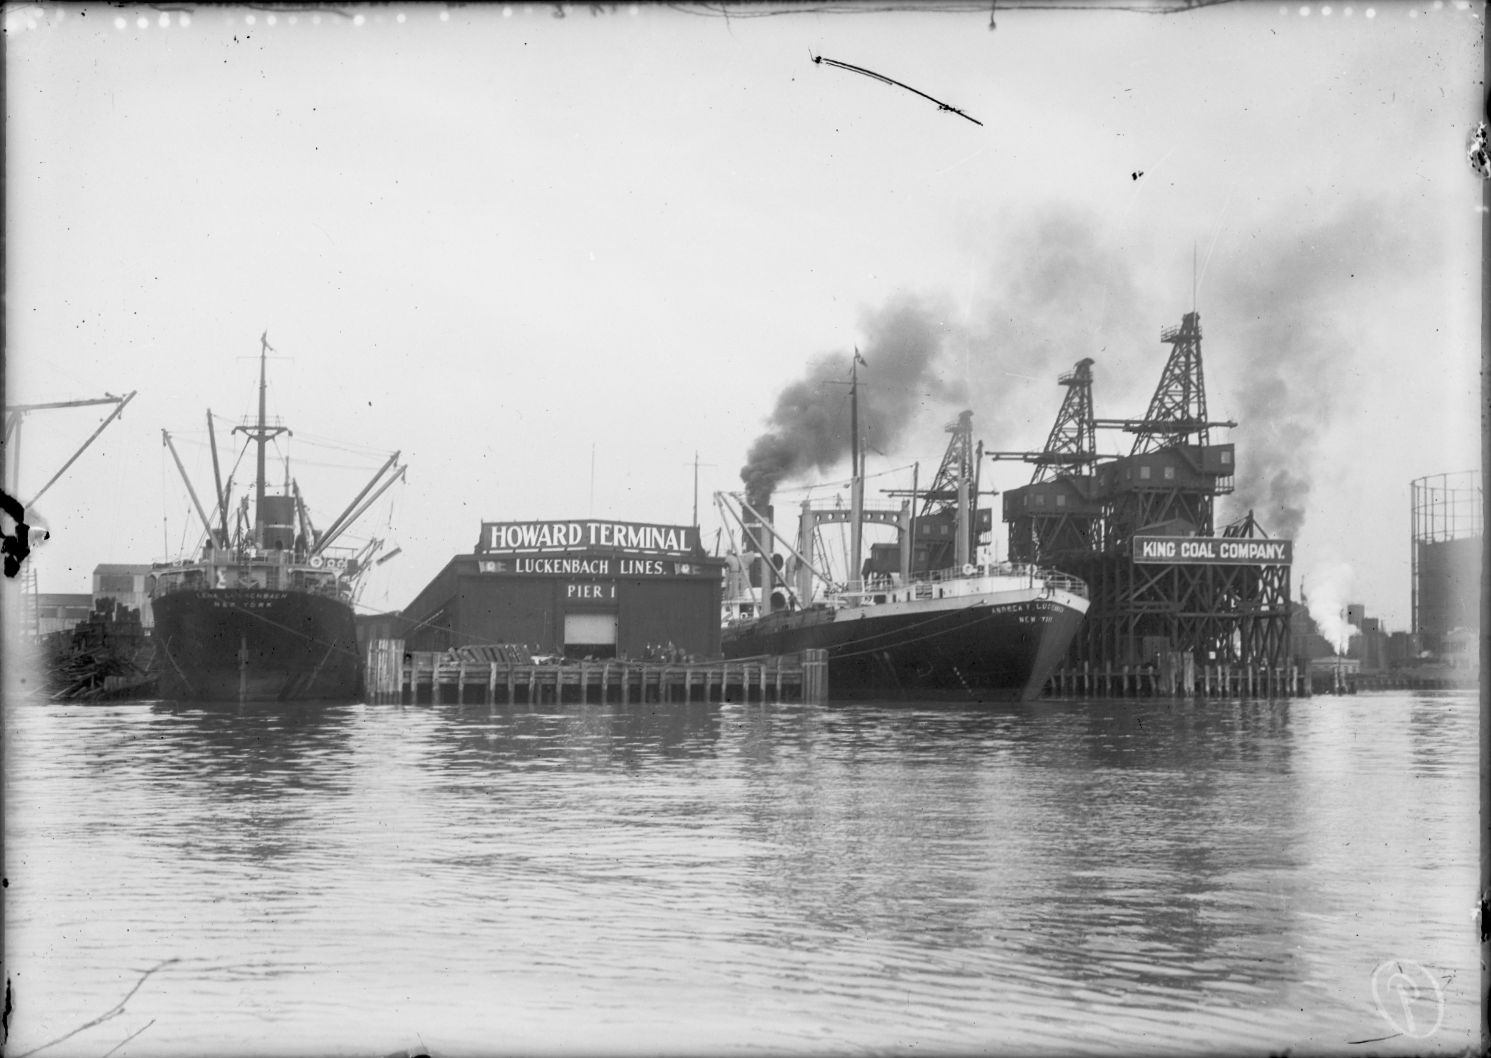 Howard Terminal from the water, 1920s